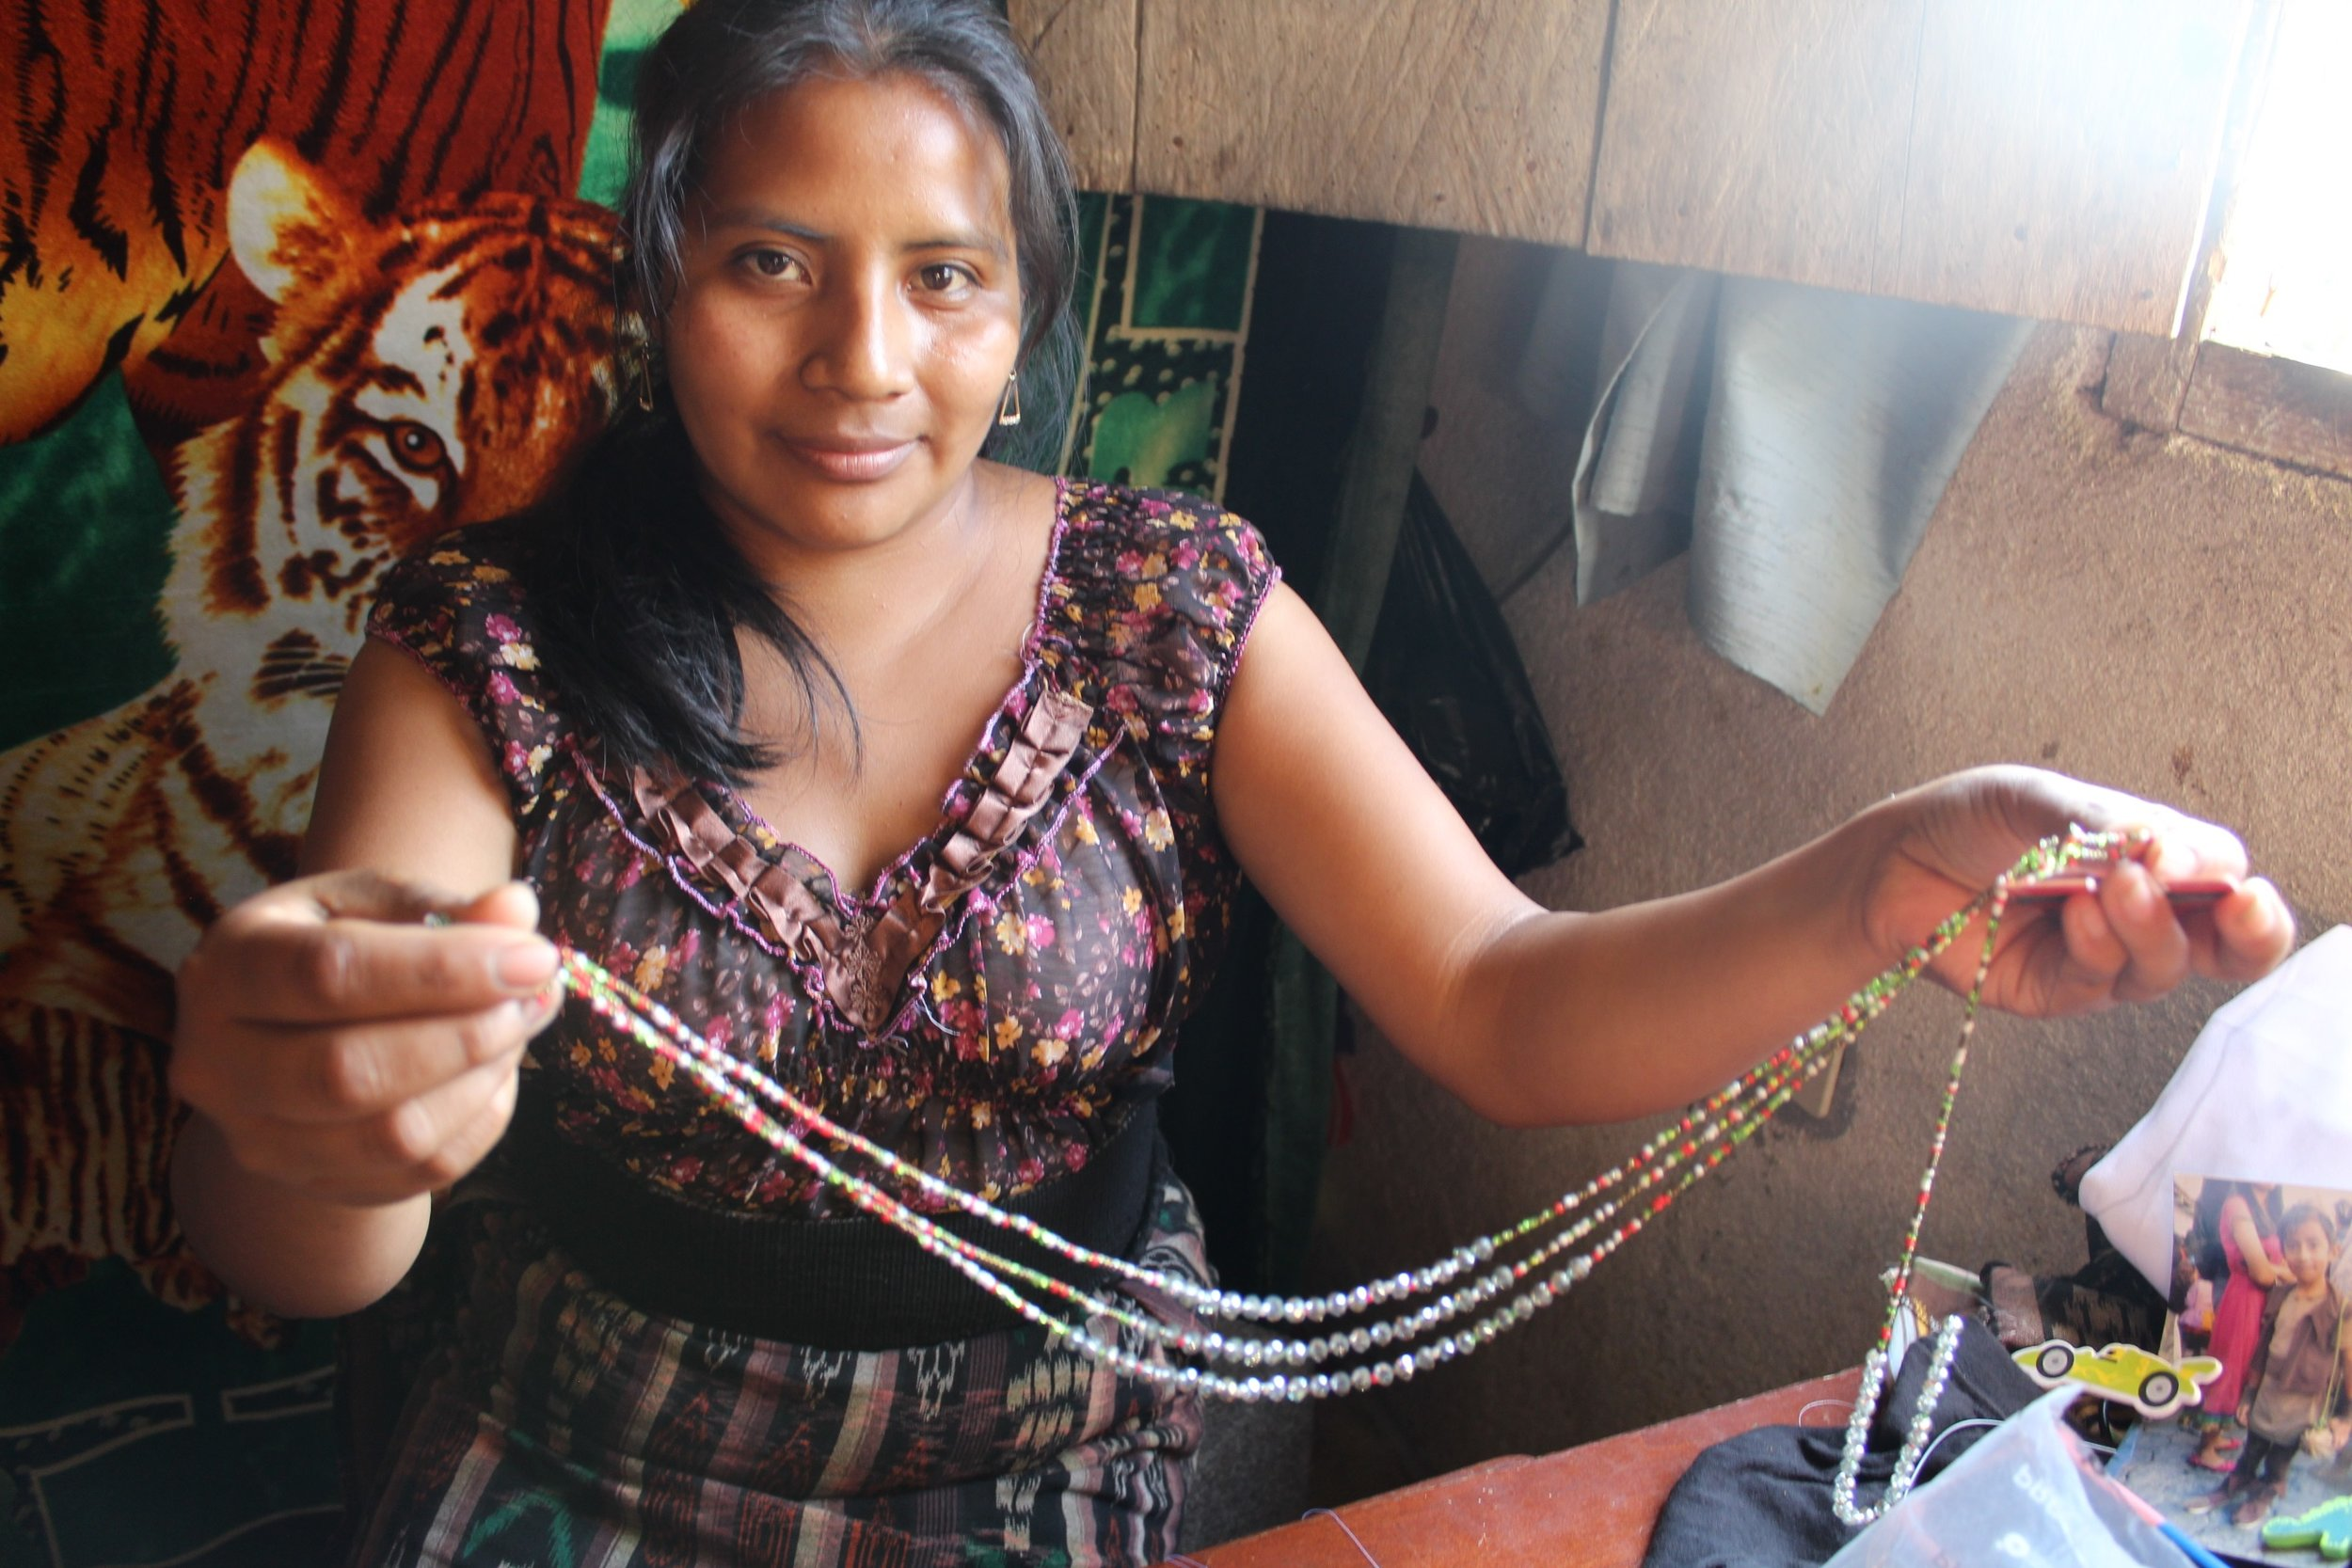 Mirian Zet - San Jorge La Laguna, Sololá - Friendship Bridge's client for 9 loan cycles.Mirian has contributed not only these beautiful and colorful boho-tassel wire bracelets to our collection, but also pompom necklaces, earrings, and an eyeglasses chain. Many ladies in Mirian's town are skilled bead artisans, and Mirian is no exception. Her persistence to create unique new products makes her a key participant of our Artisan Program.